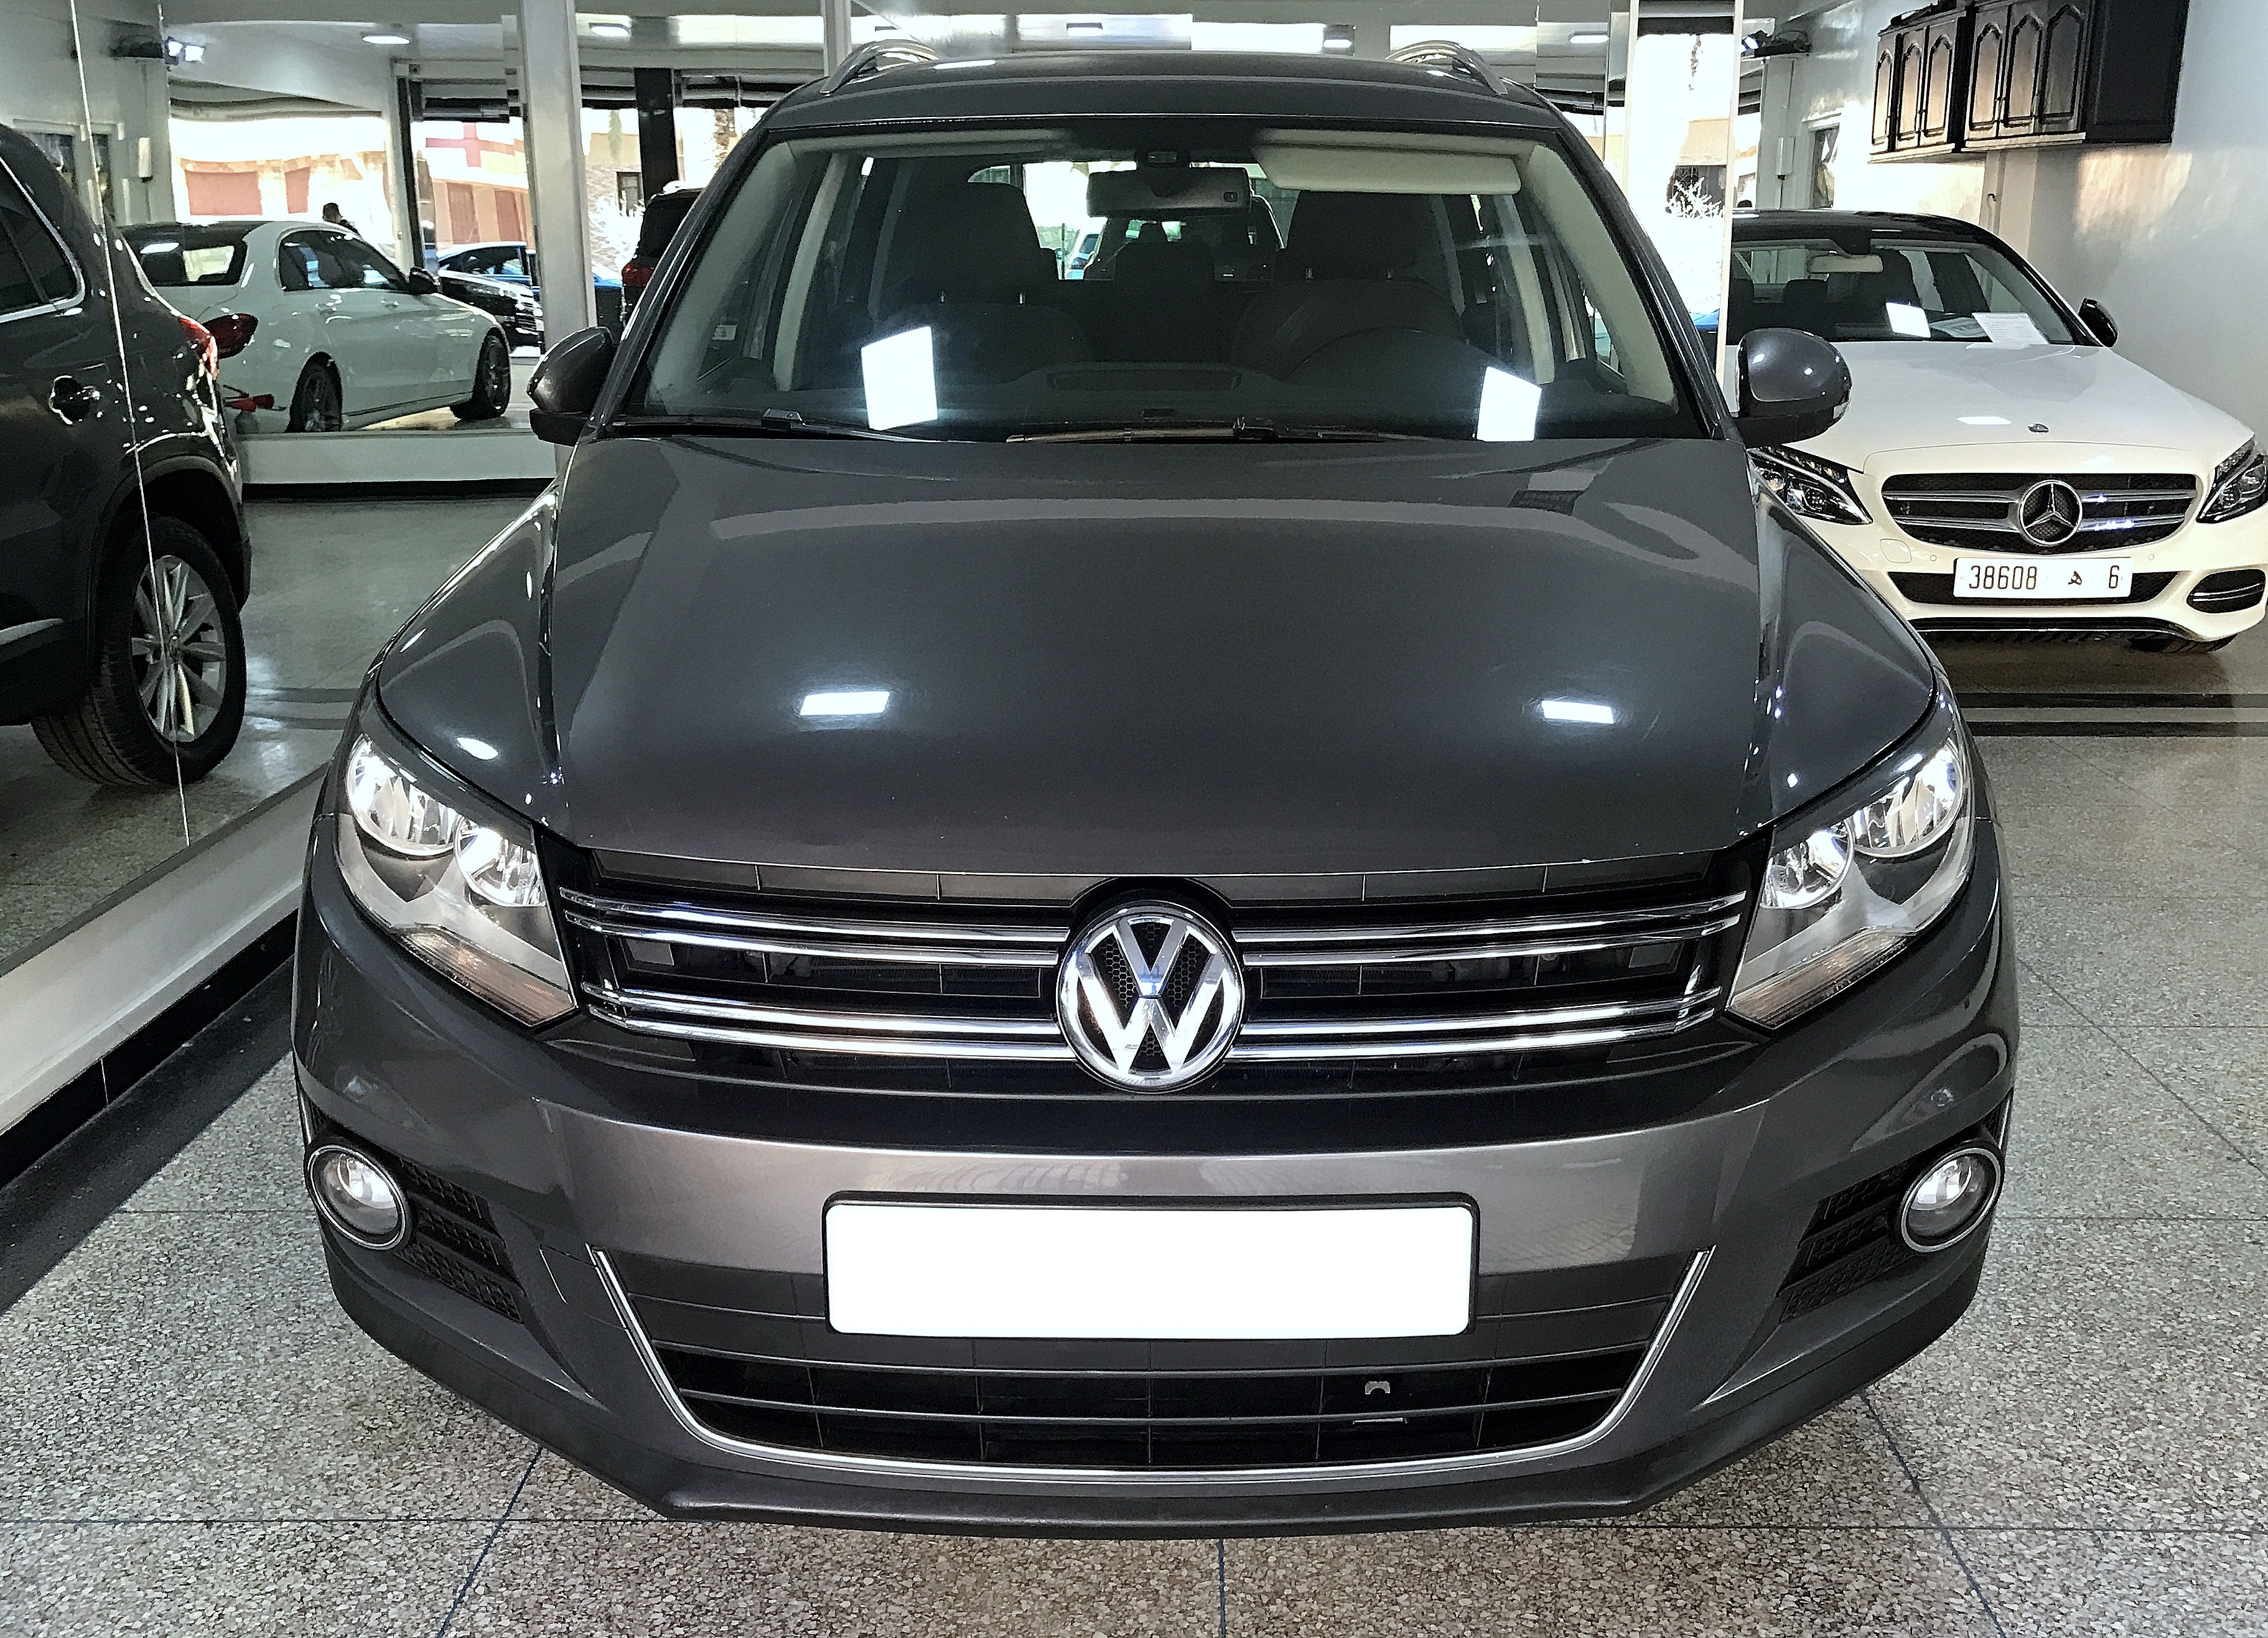 volkswagen tiguan 2 0 tdi highline bva dgs 7 auto achraf. Black Bedroom Furniture Sets. Home Design Ideas